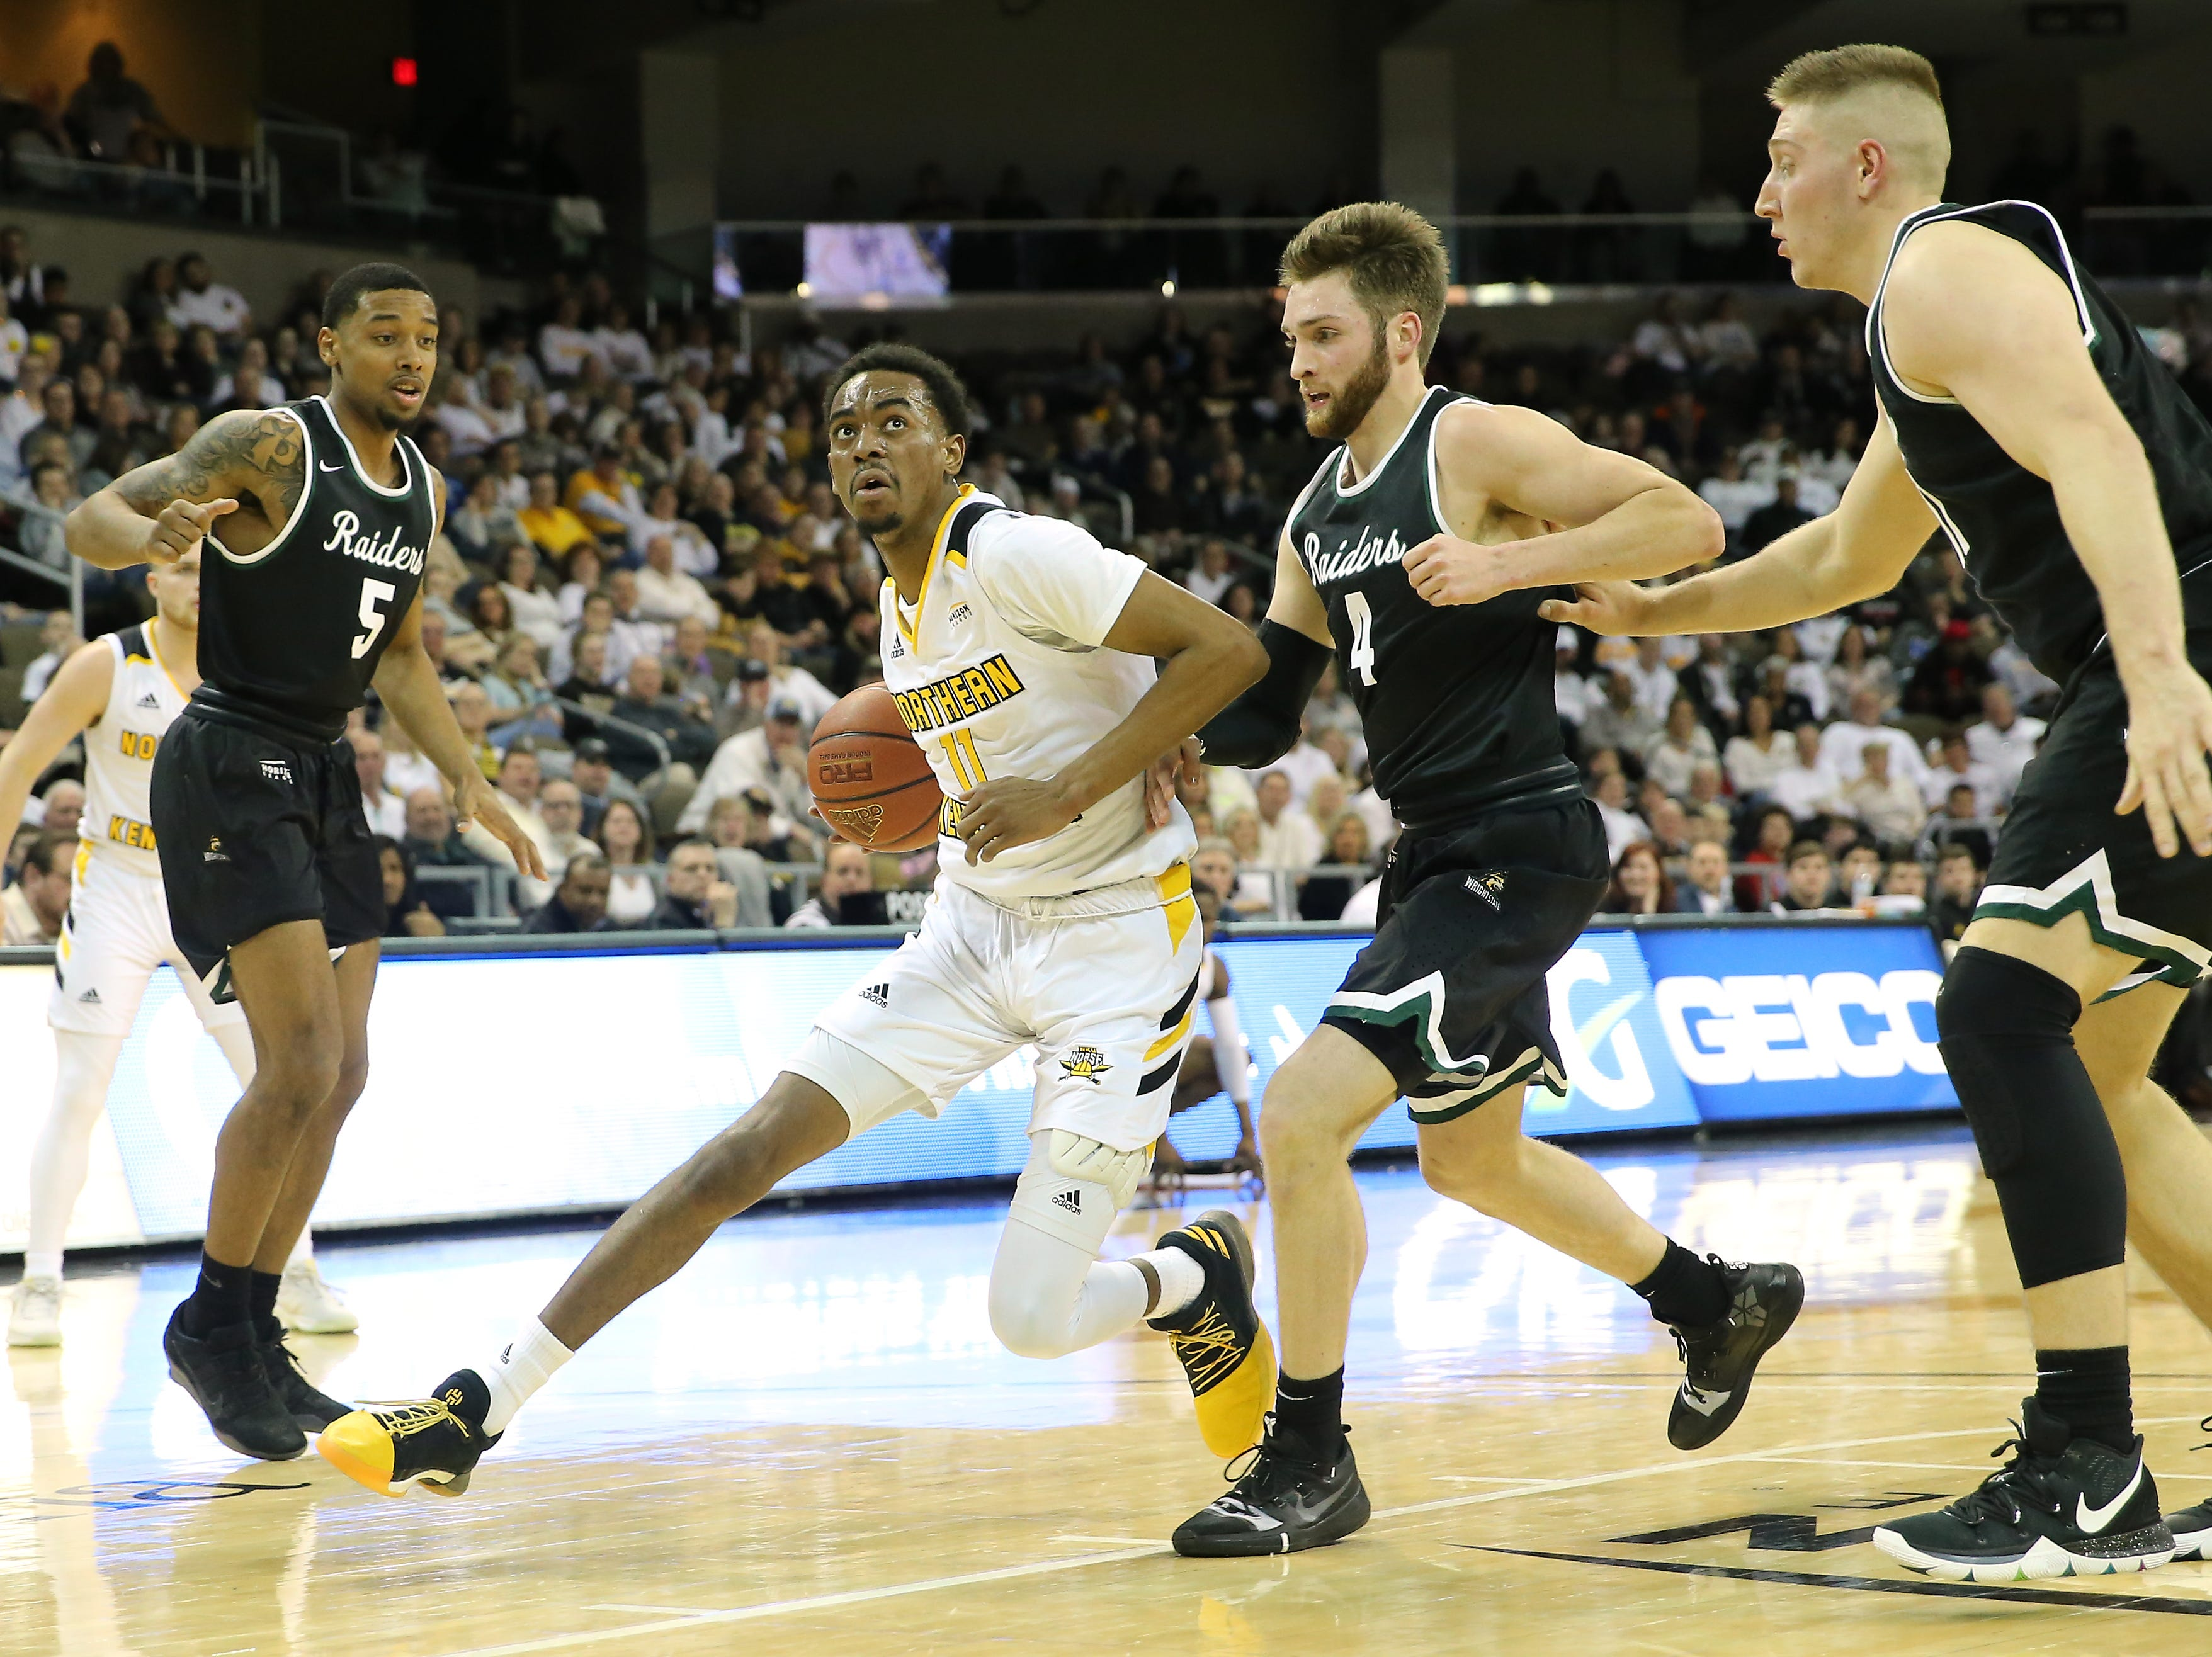 NKU guard Jalen Tate eyes the basket on a drive in the first half.